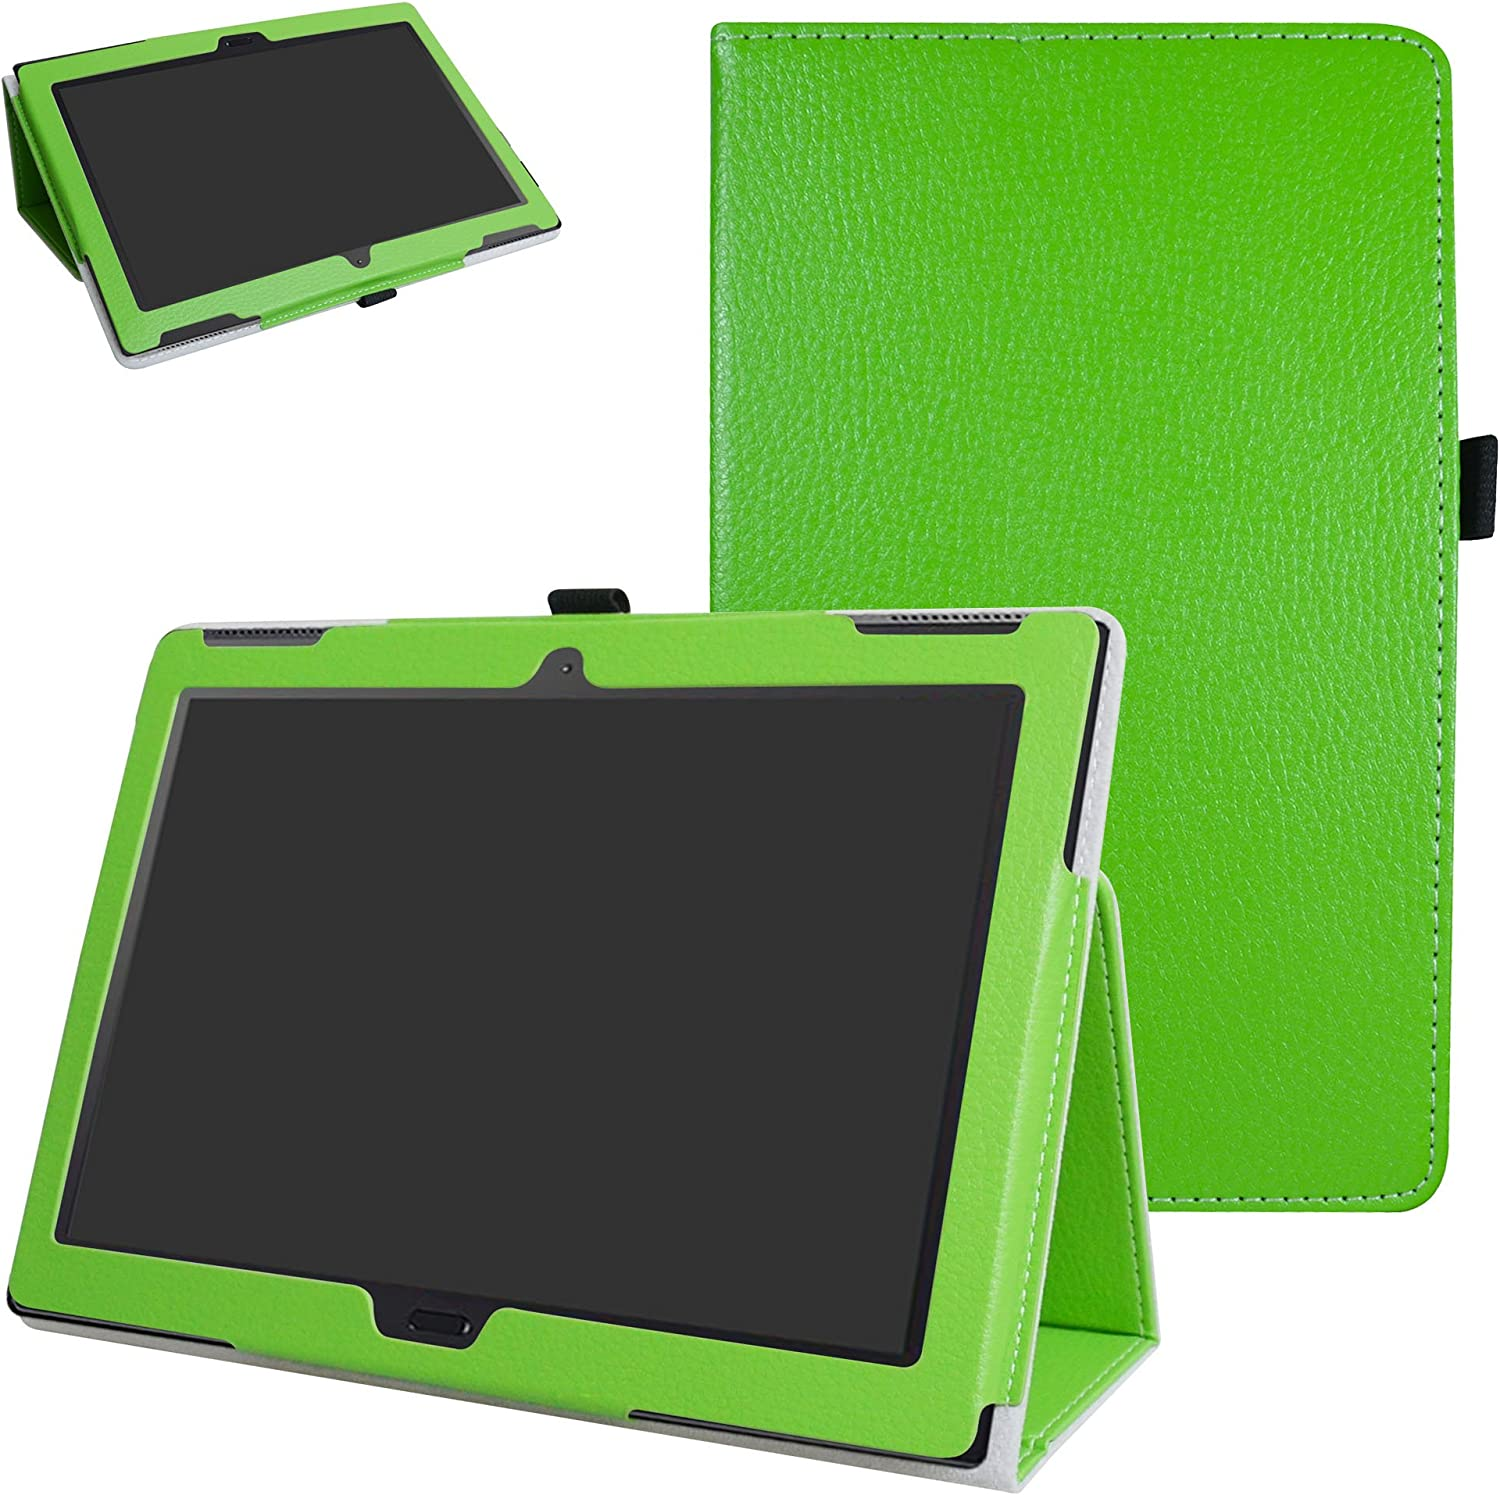 "MAMA MOUTH Lenovo Moto tab X704A Case, PU Leather Folio 2-Folding Stand Cover with Stylus Holder for 10.1"" Lenovo Moto tab X704A / Lenovo Tab 4 10 Plus Tablet,Green"